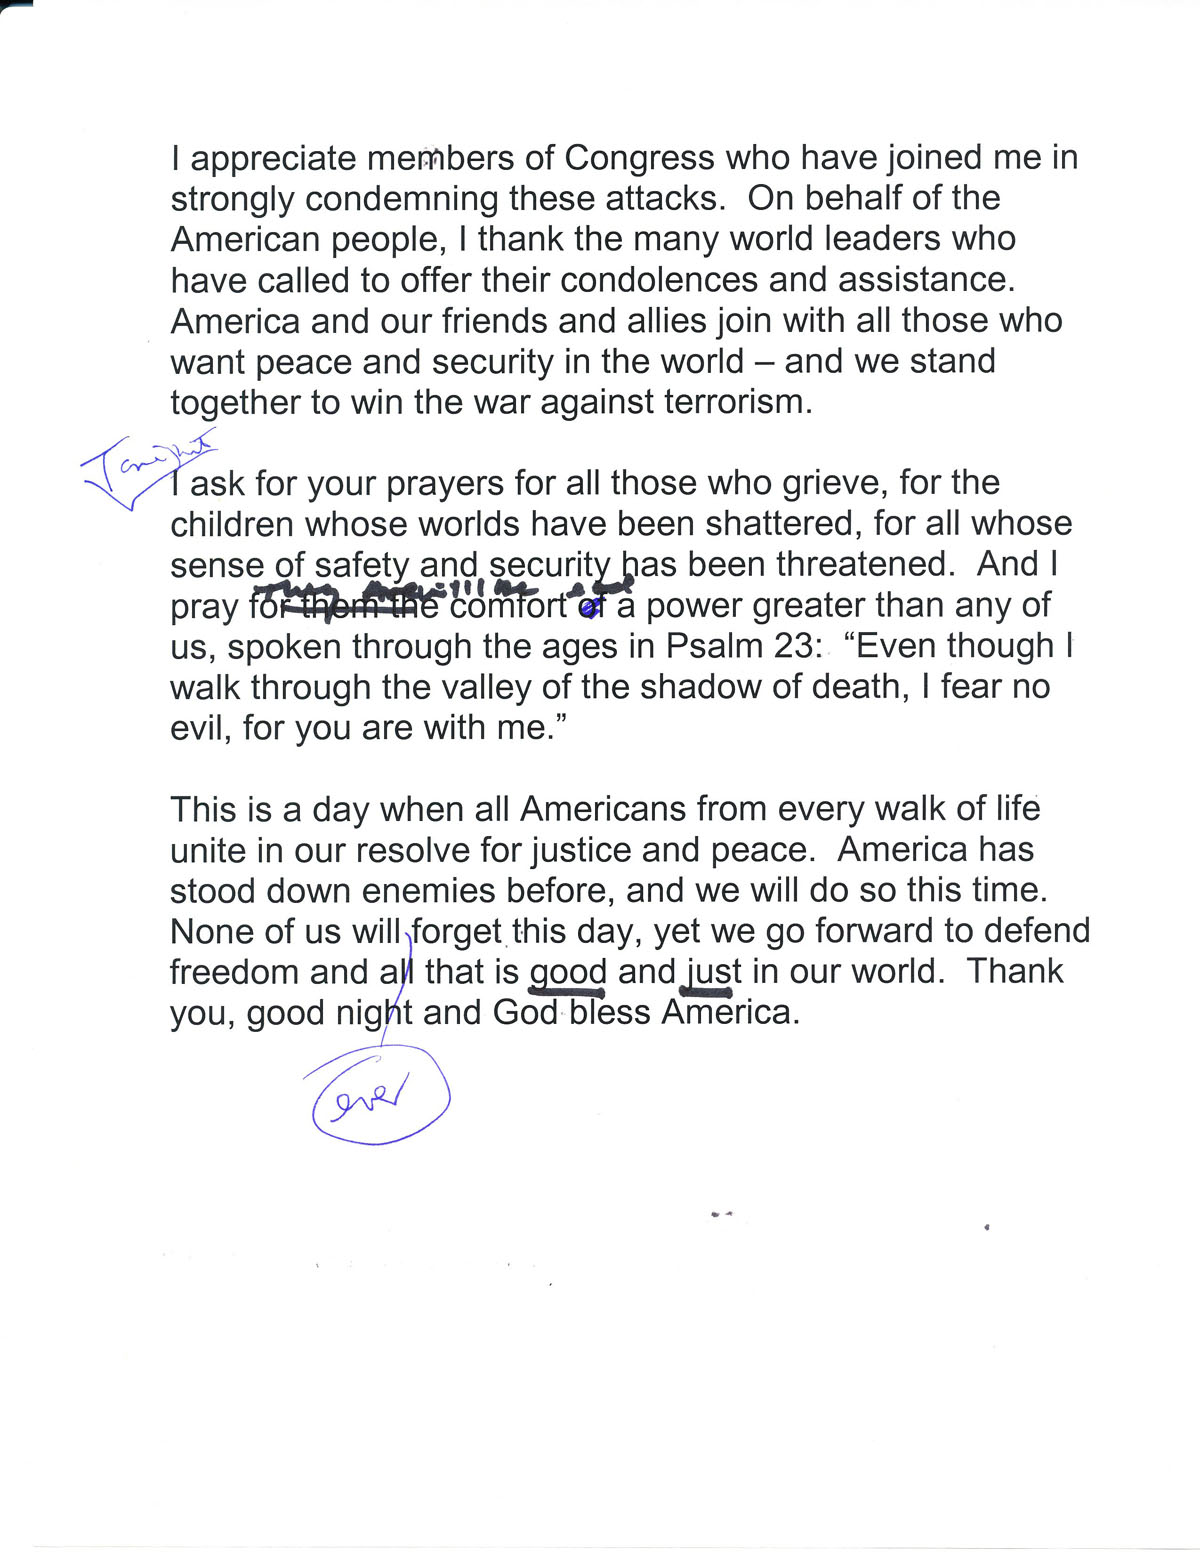 essay an address to the nation pieces of history samples of  an address to the nation pieces of history page 3 of bush s 9 11 speech